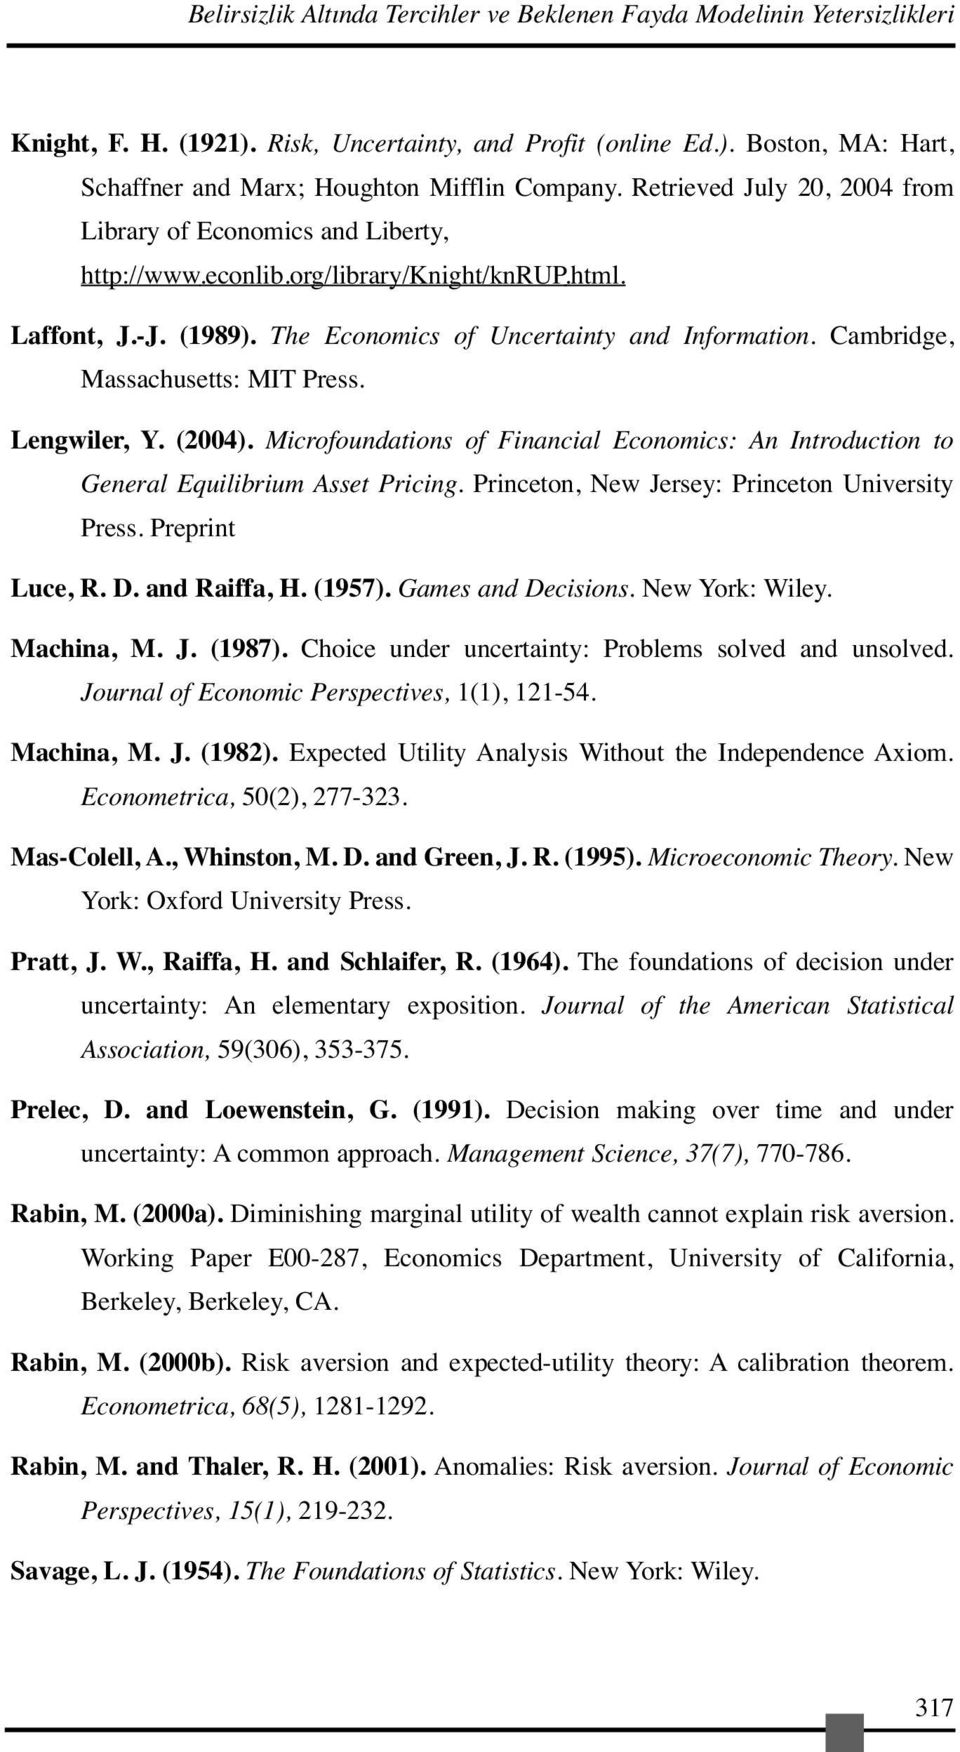 Cambridge, Massachusetts: MIT Press. Lengwiler, Y. (2004). Microfoundations of Financial Economics: An Introduction to General Equilibrium Asset Pricing.